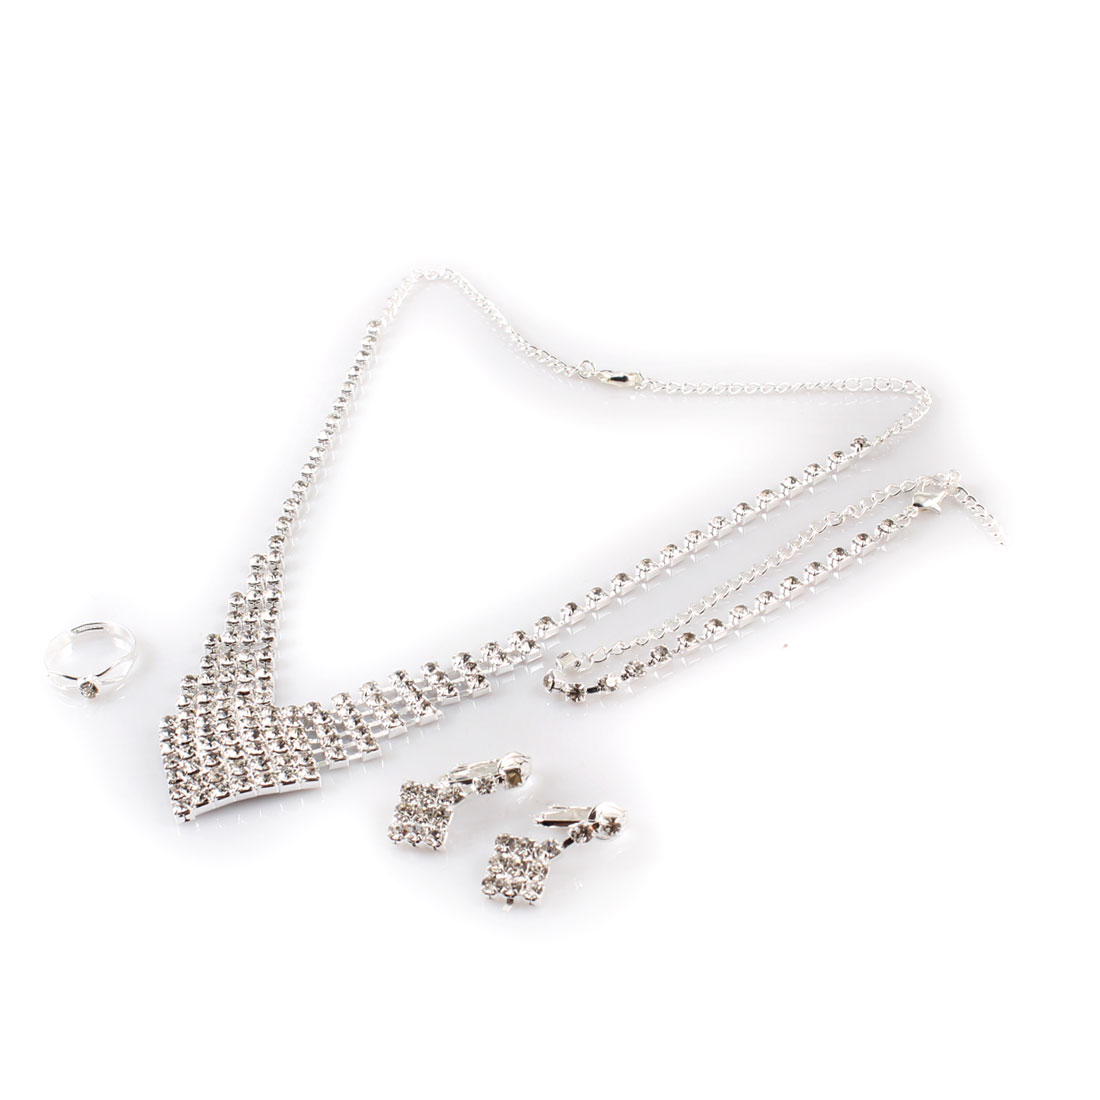 Lobster Clasp Adjustable Rhinestone Bracelet Necklace 4 in 1 Jewelry for Lady